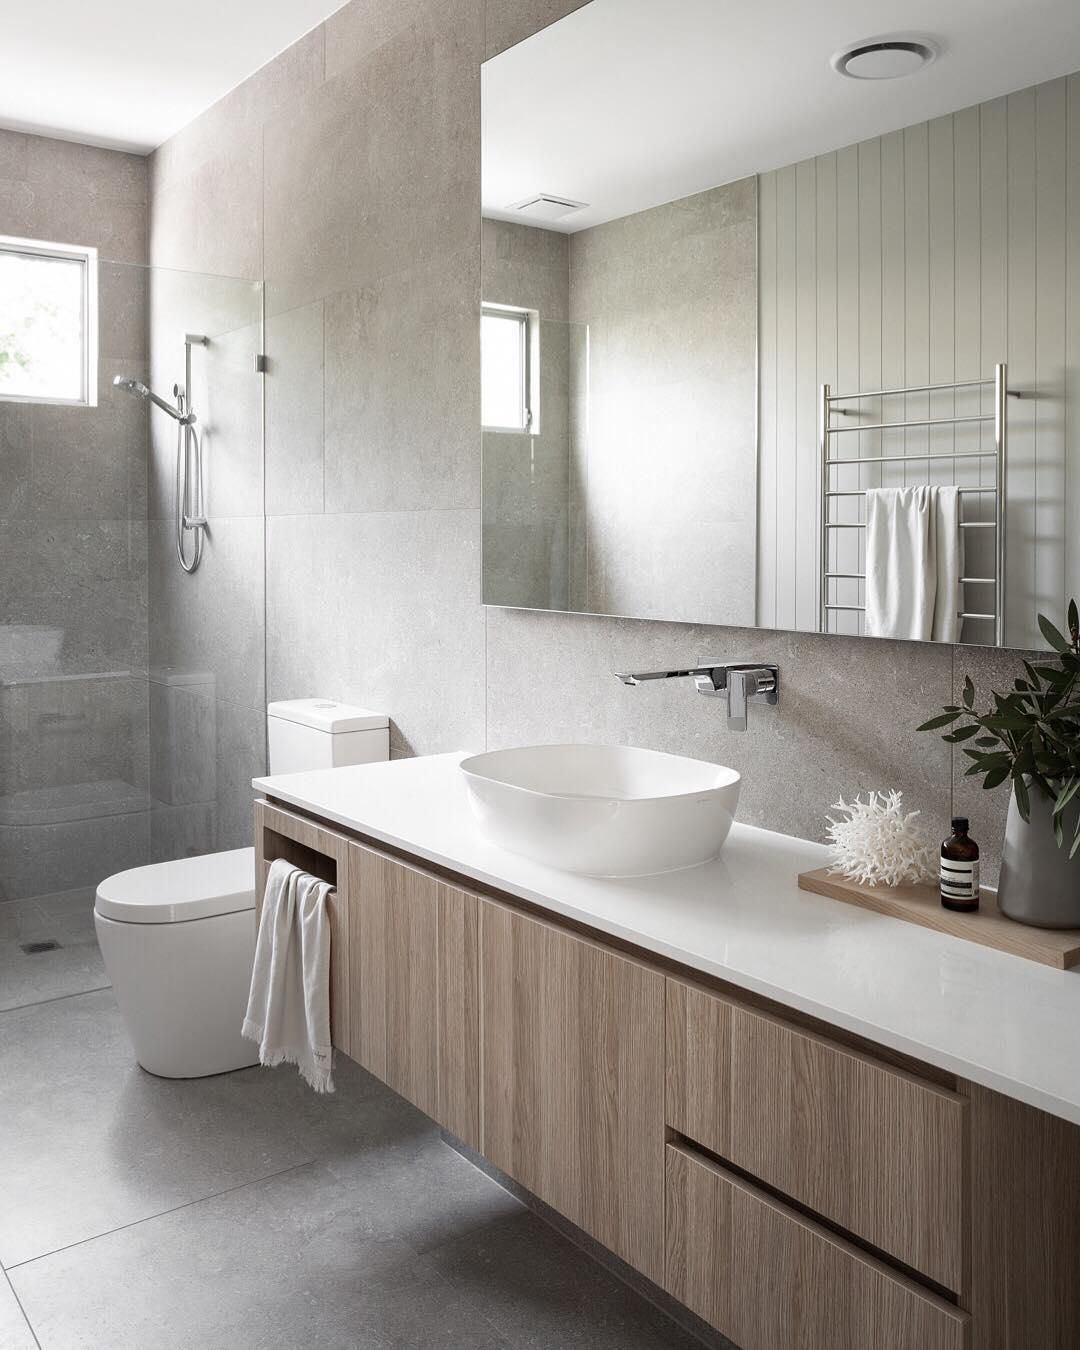 36 Tips For Choosing The Right Bathroom Tile Designs Trends